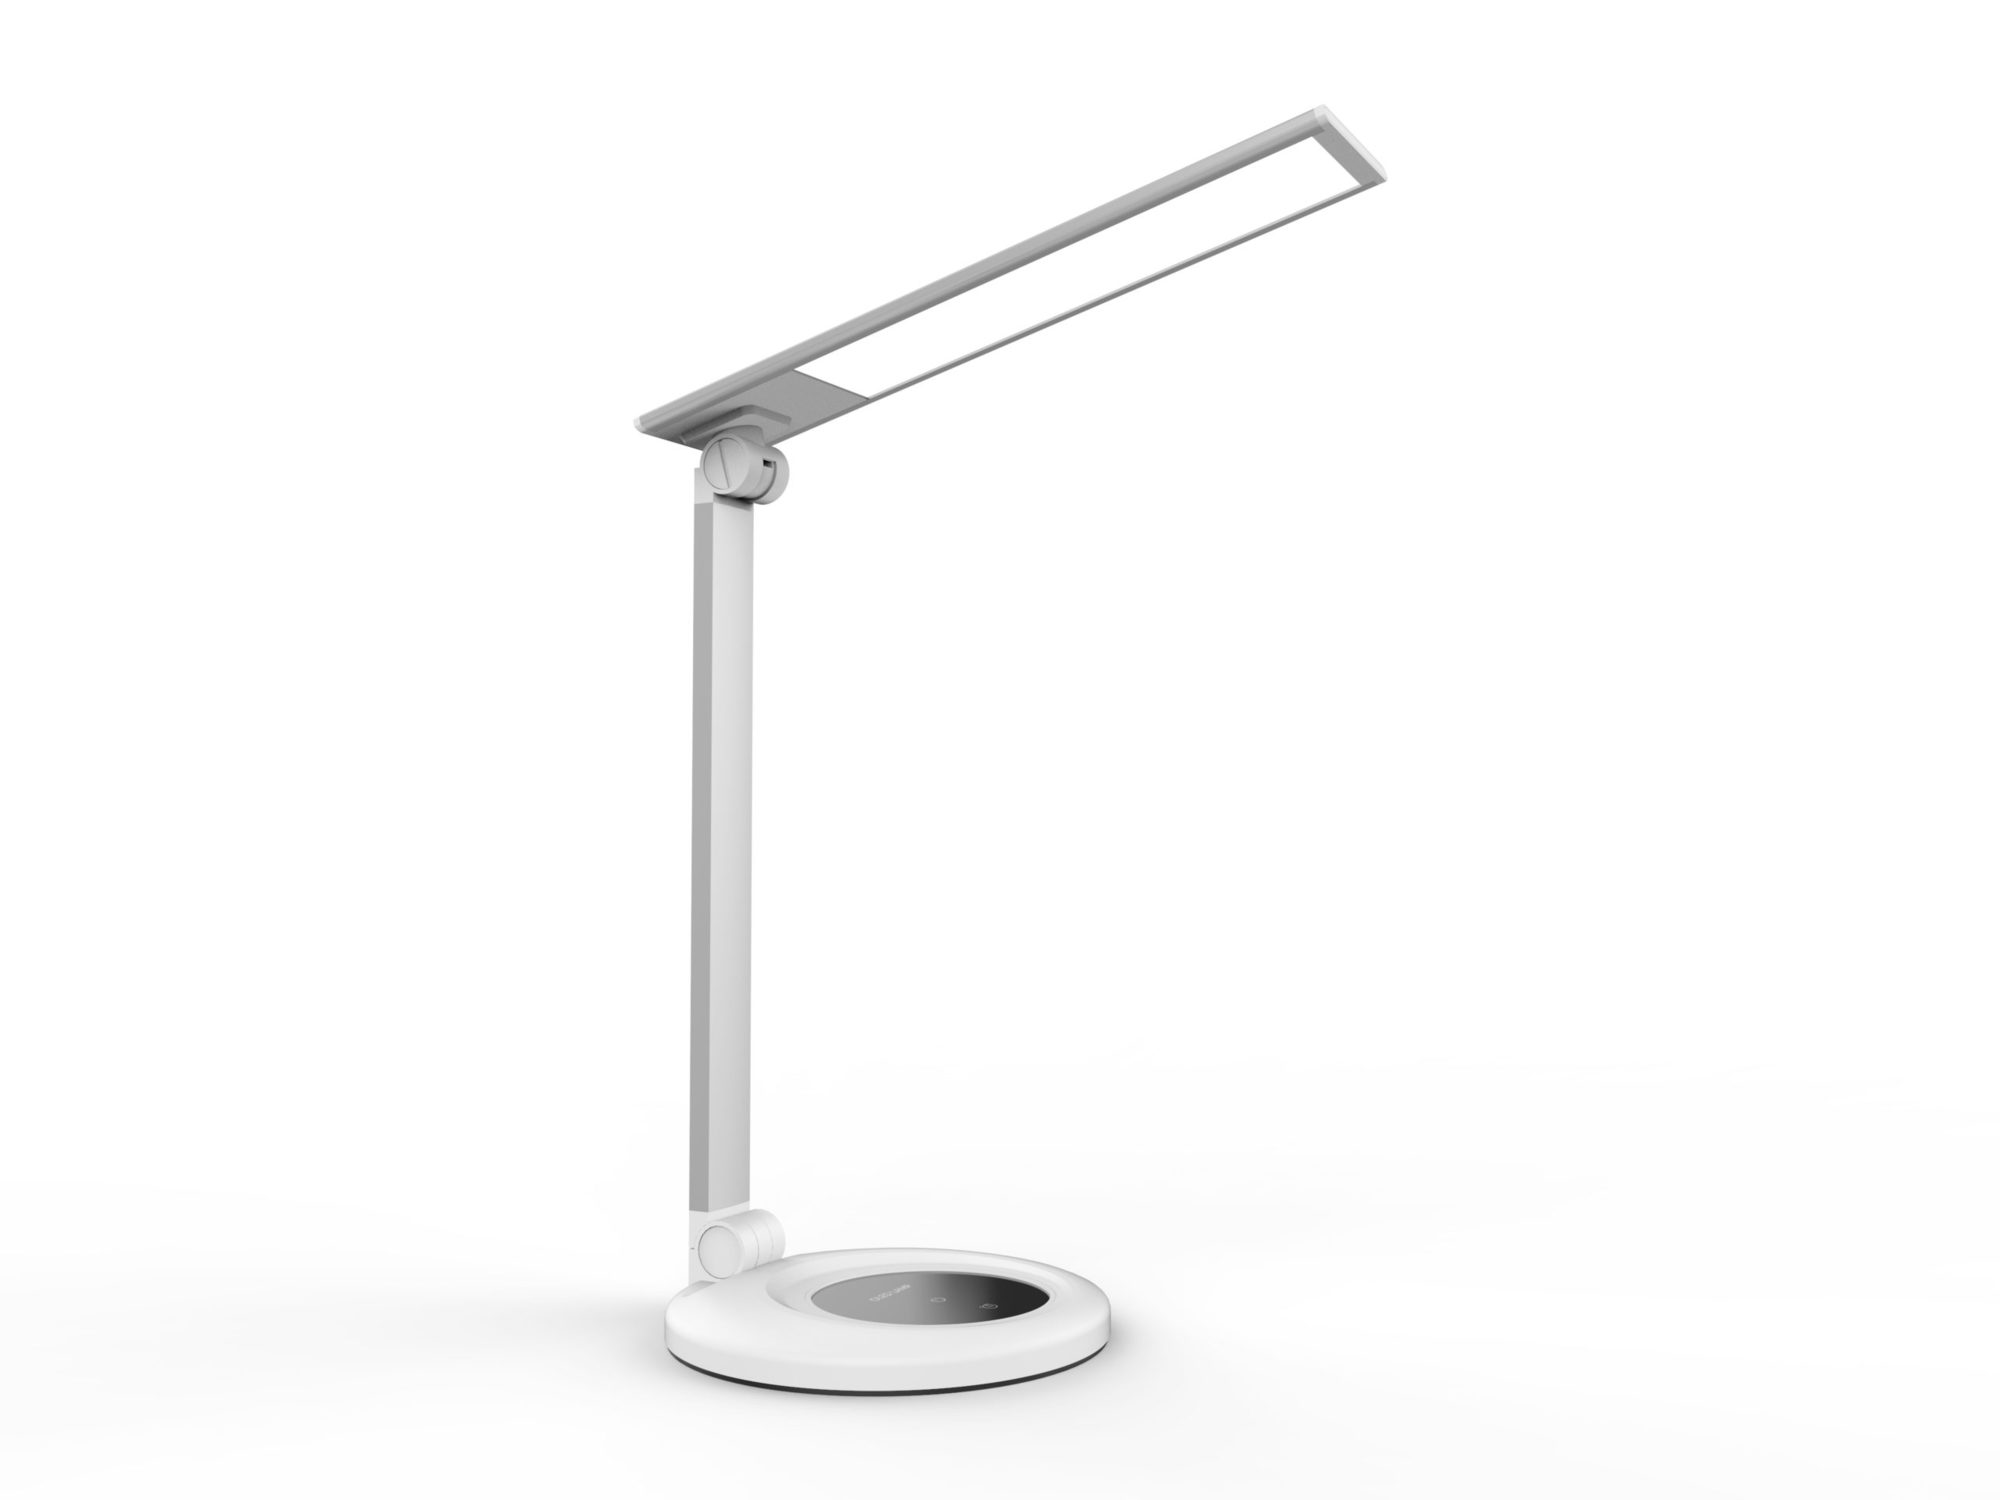 Jiangsu First Light C-1 Table Lamp